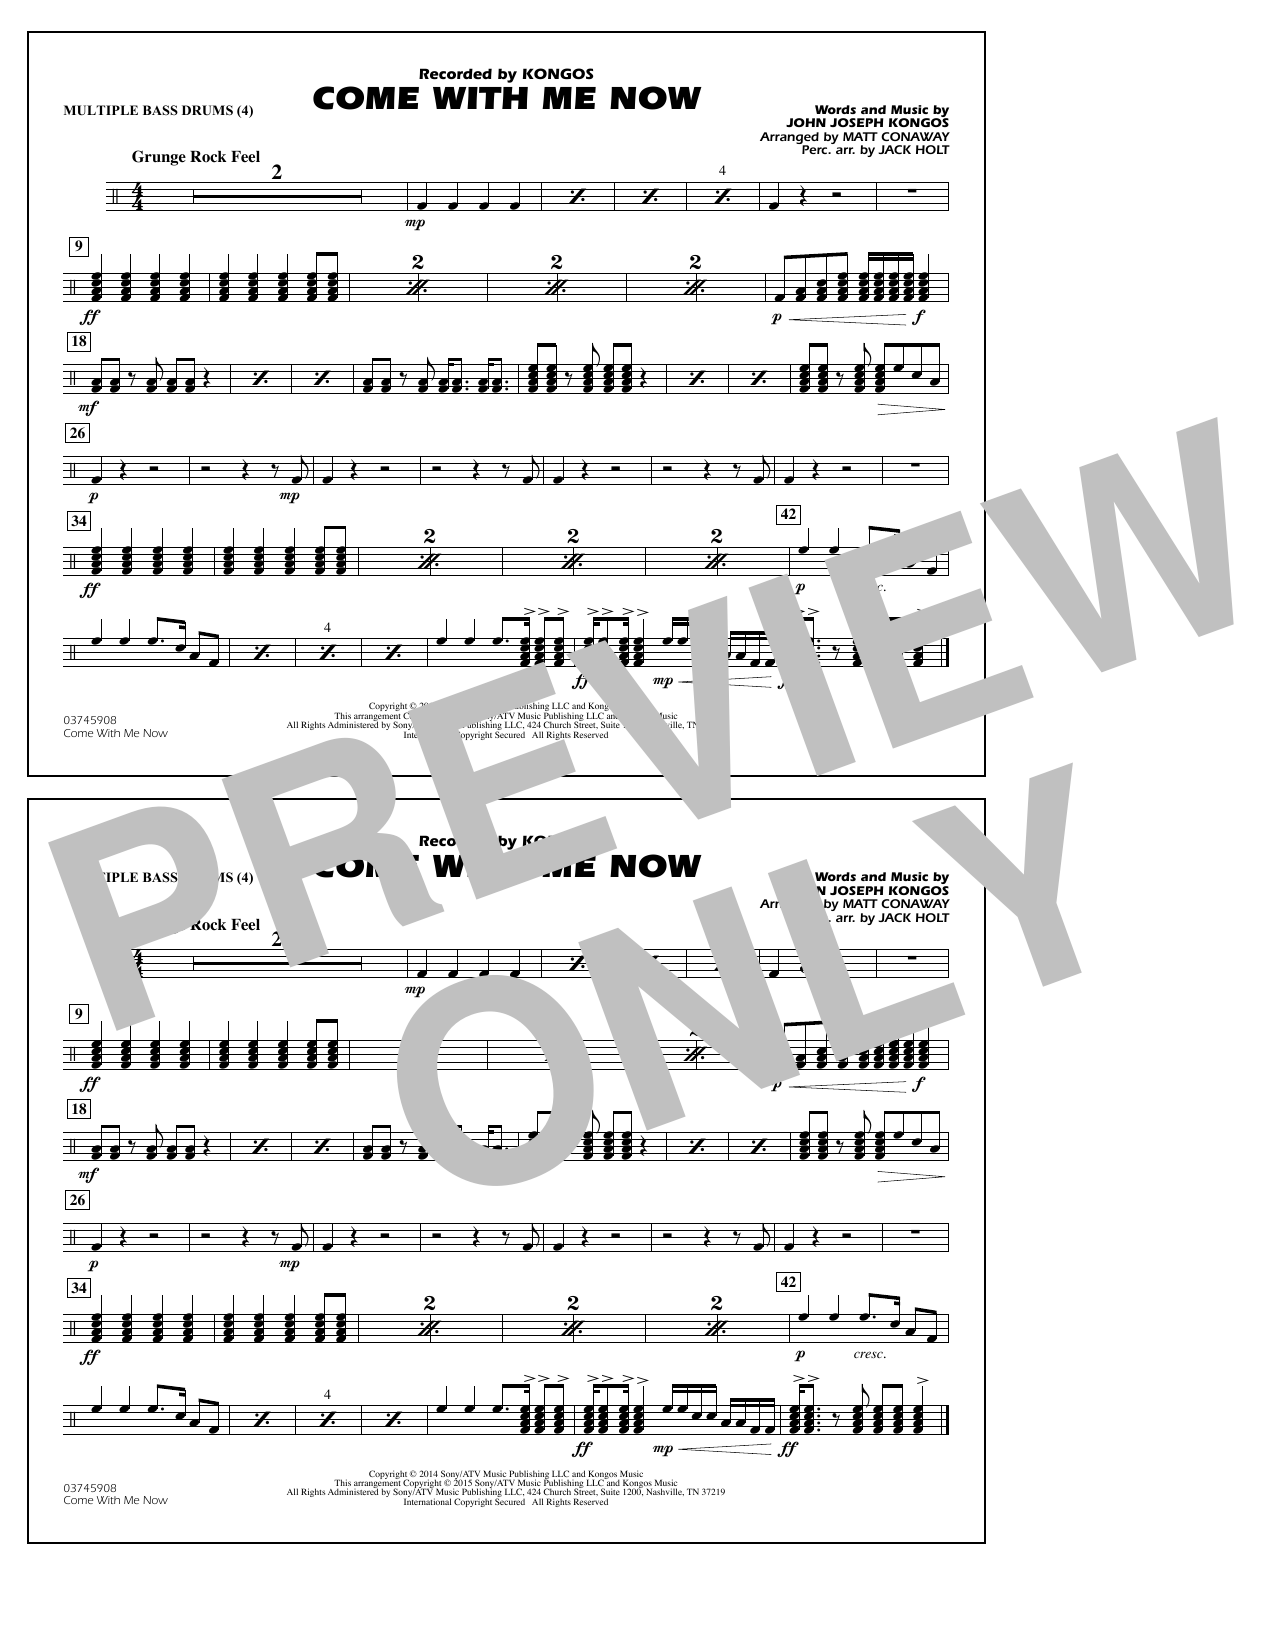 Come with Me Now - Multiple Bass Drums (Marching Band)